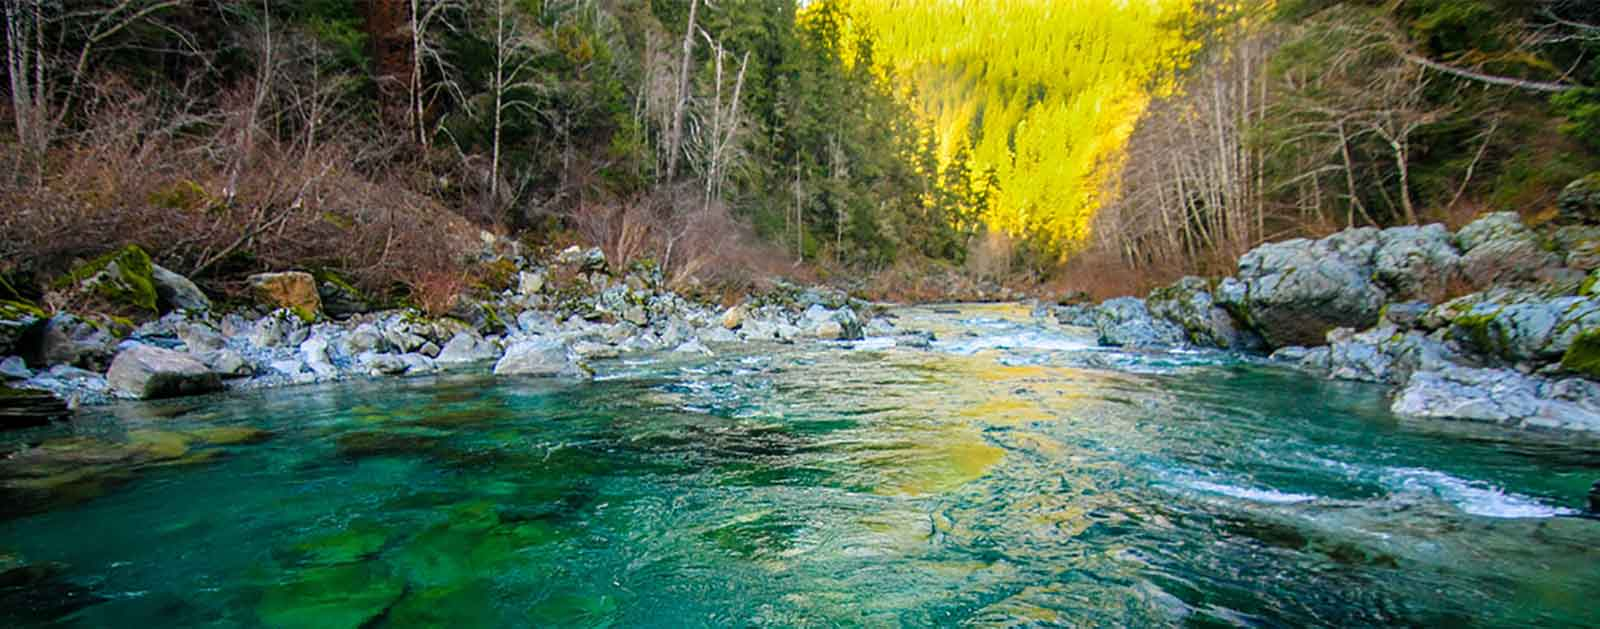 Desktop Wallpaper Fall Water What Makes A River Different Colors American Rivers